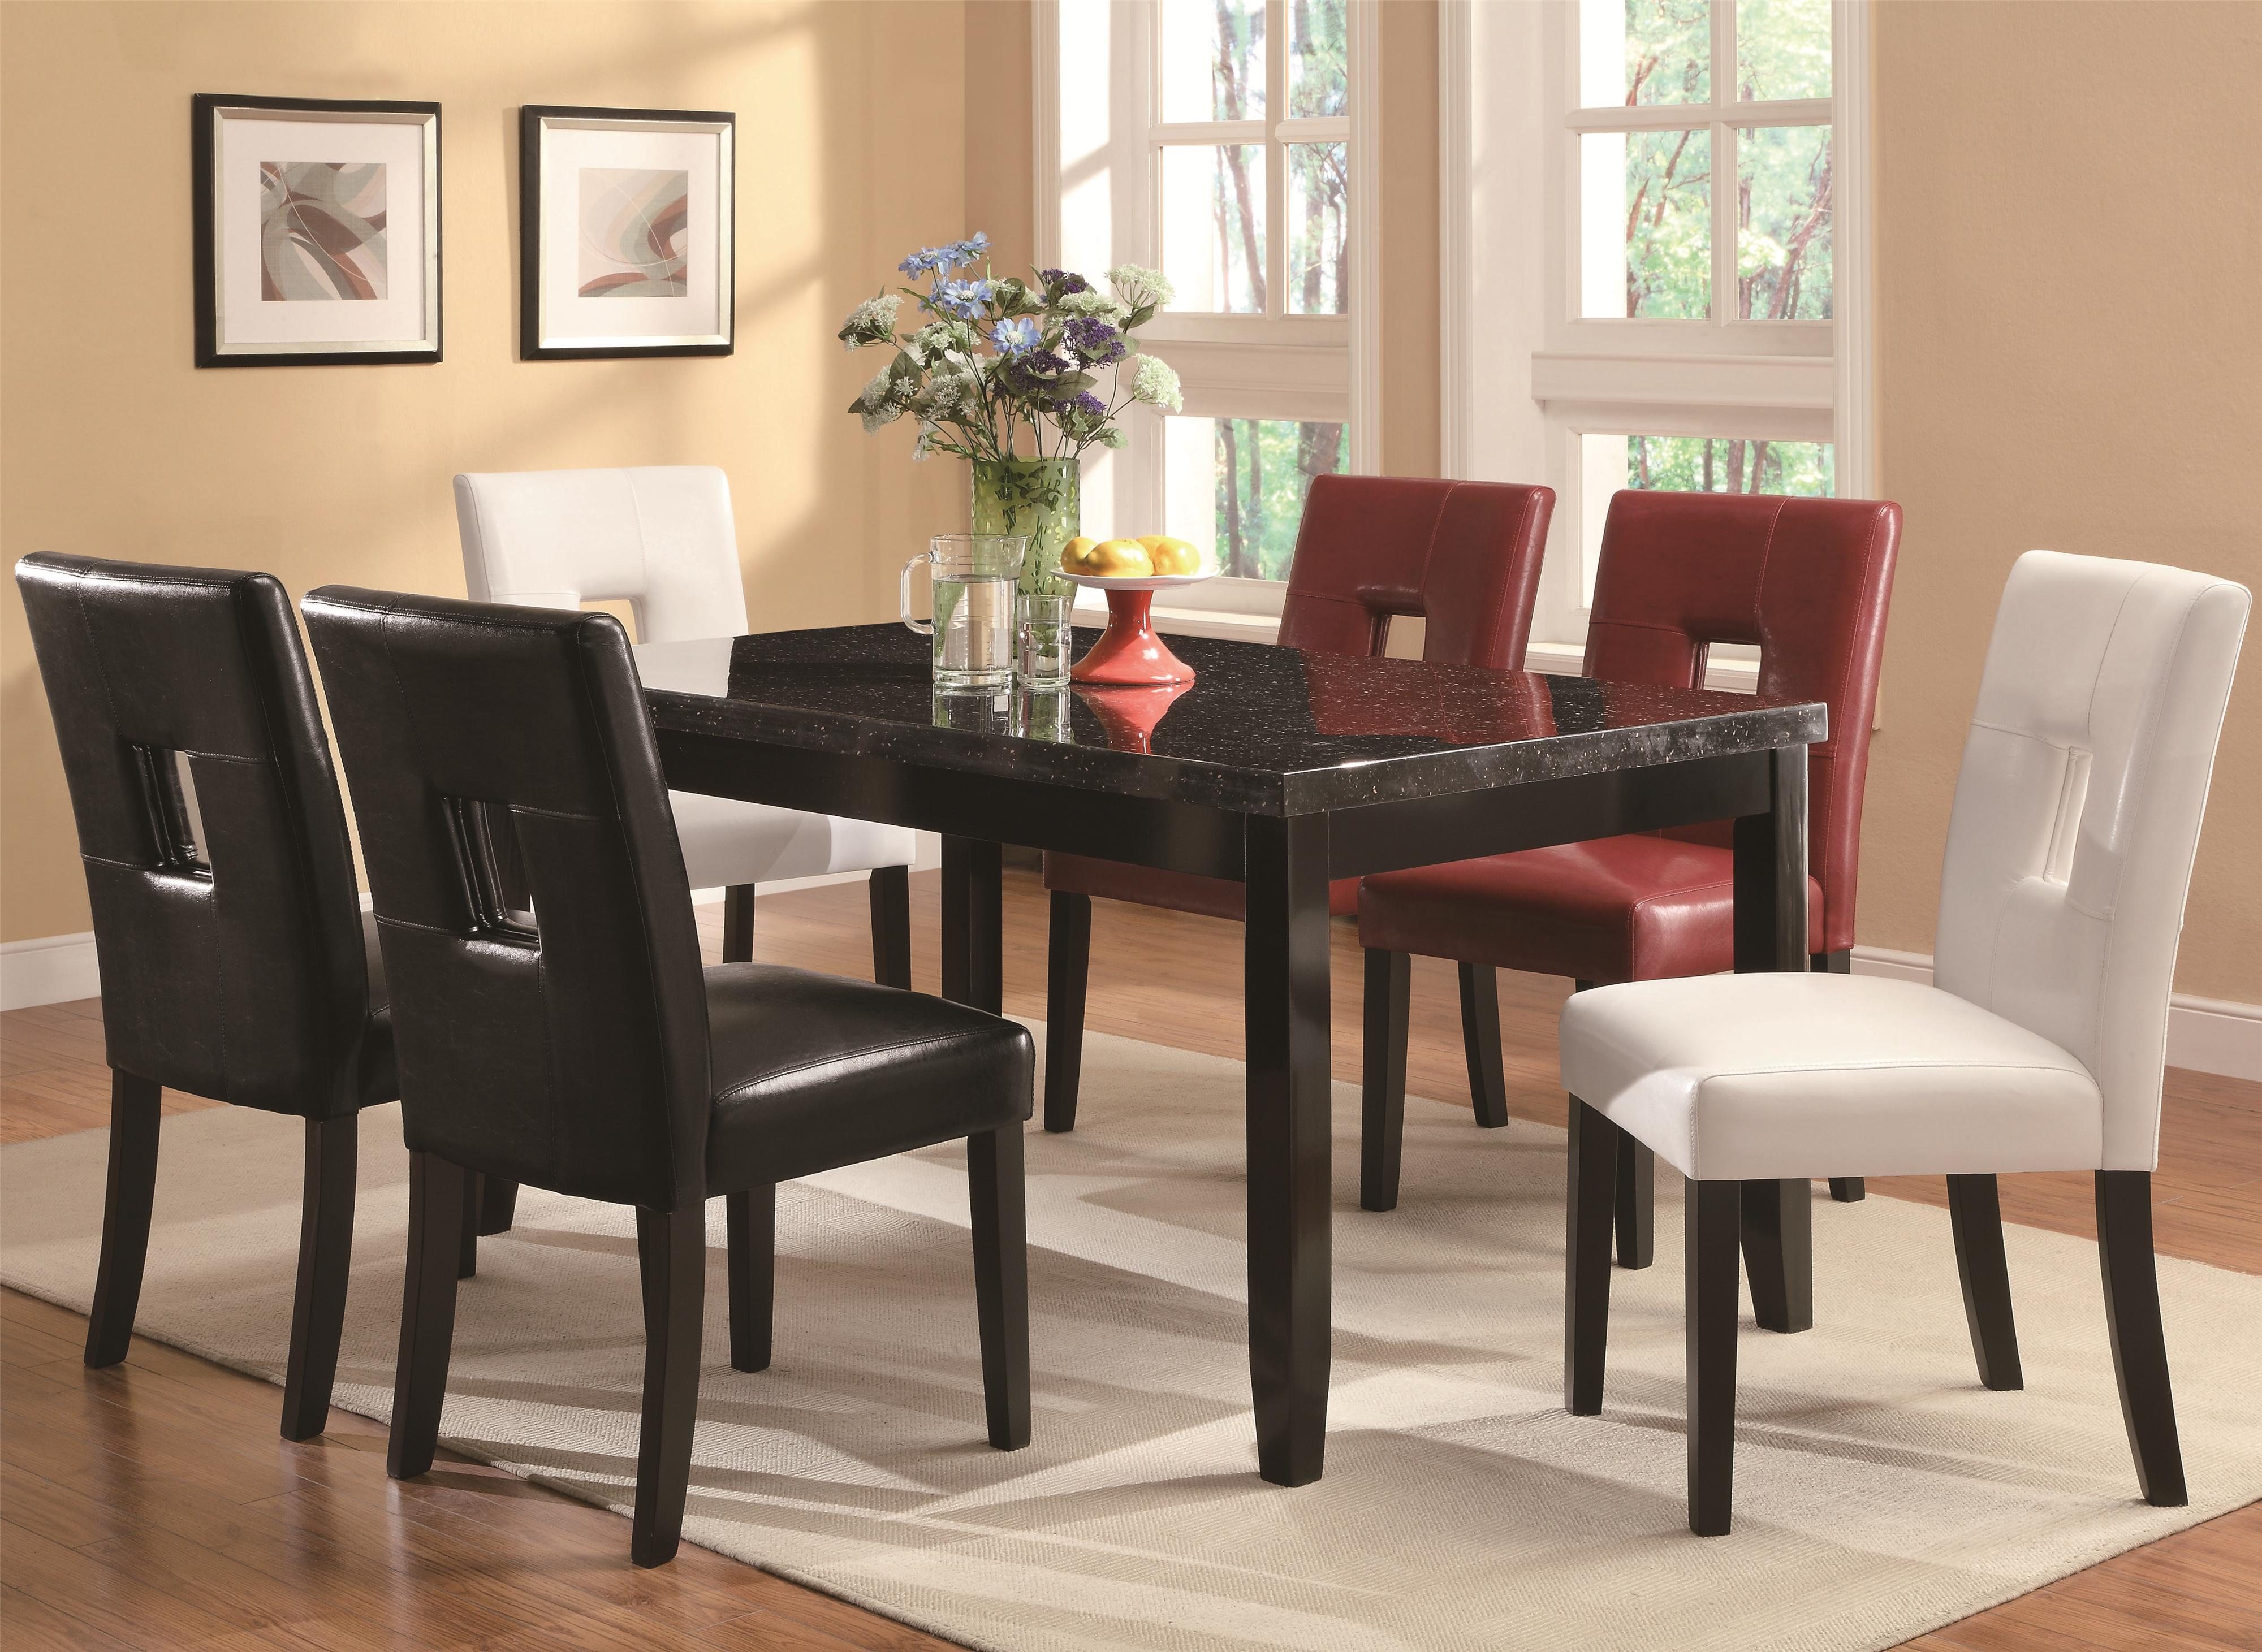 Dining side chair w plush seating by coaster wolf and gardiner wolf furniture - Plush dining room chairs ...